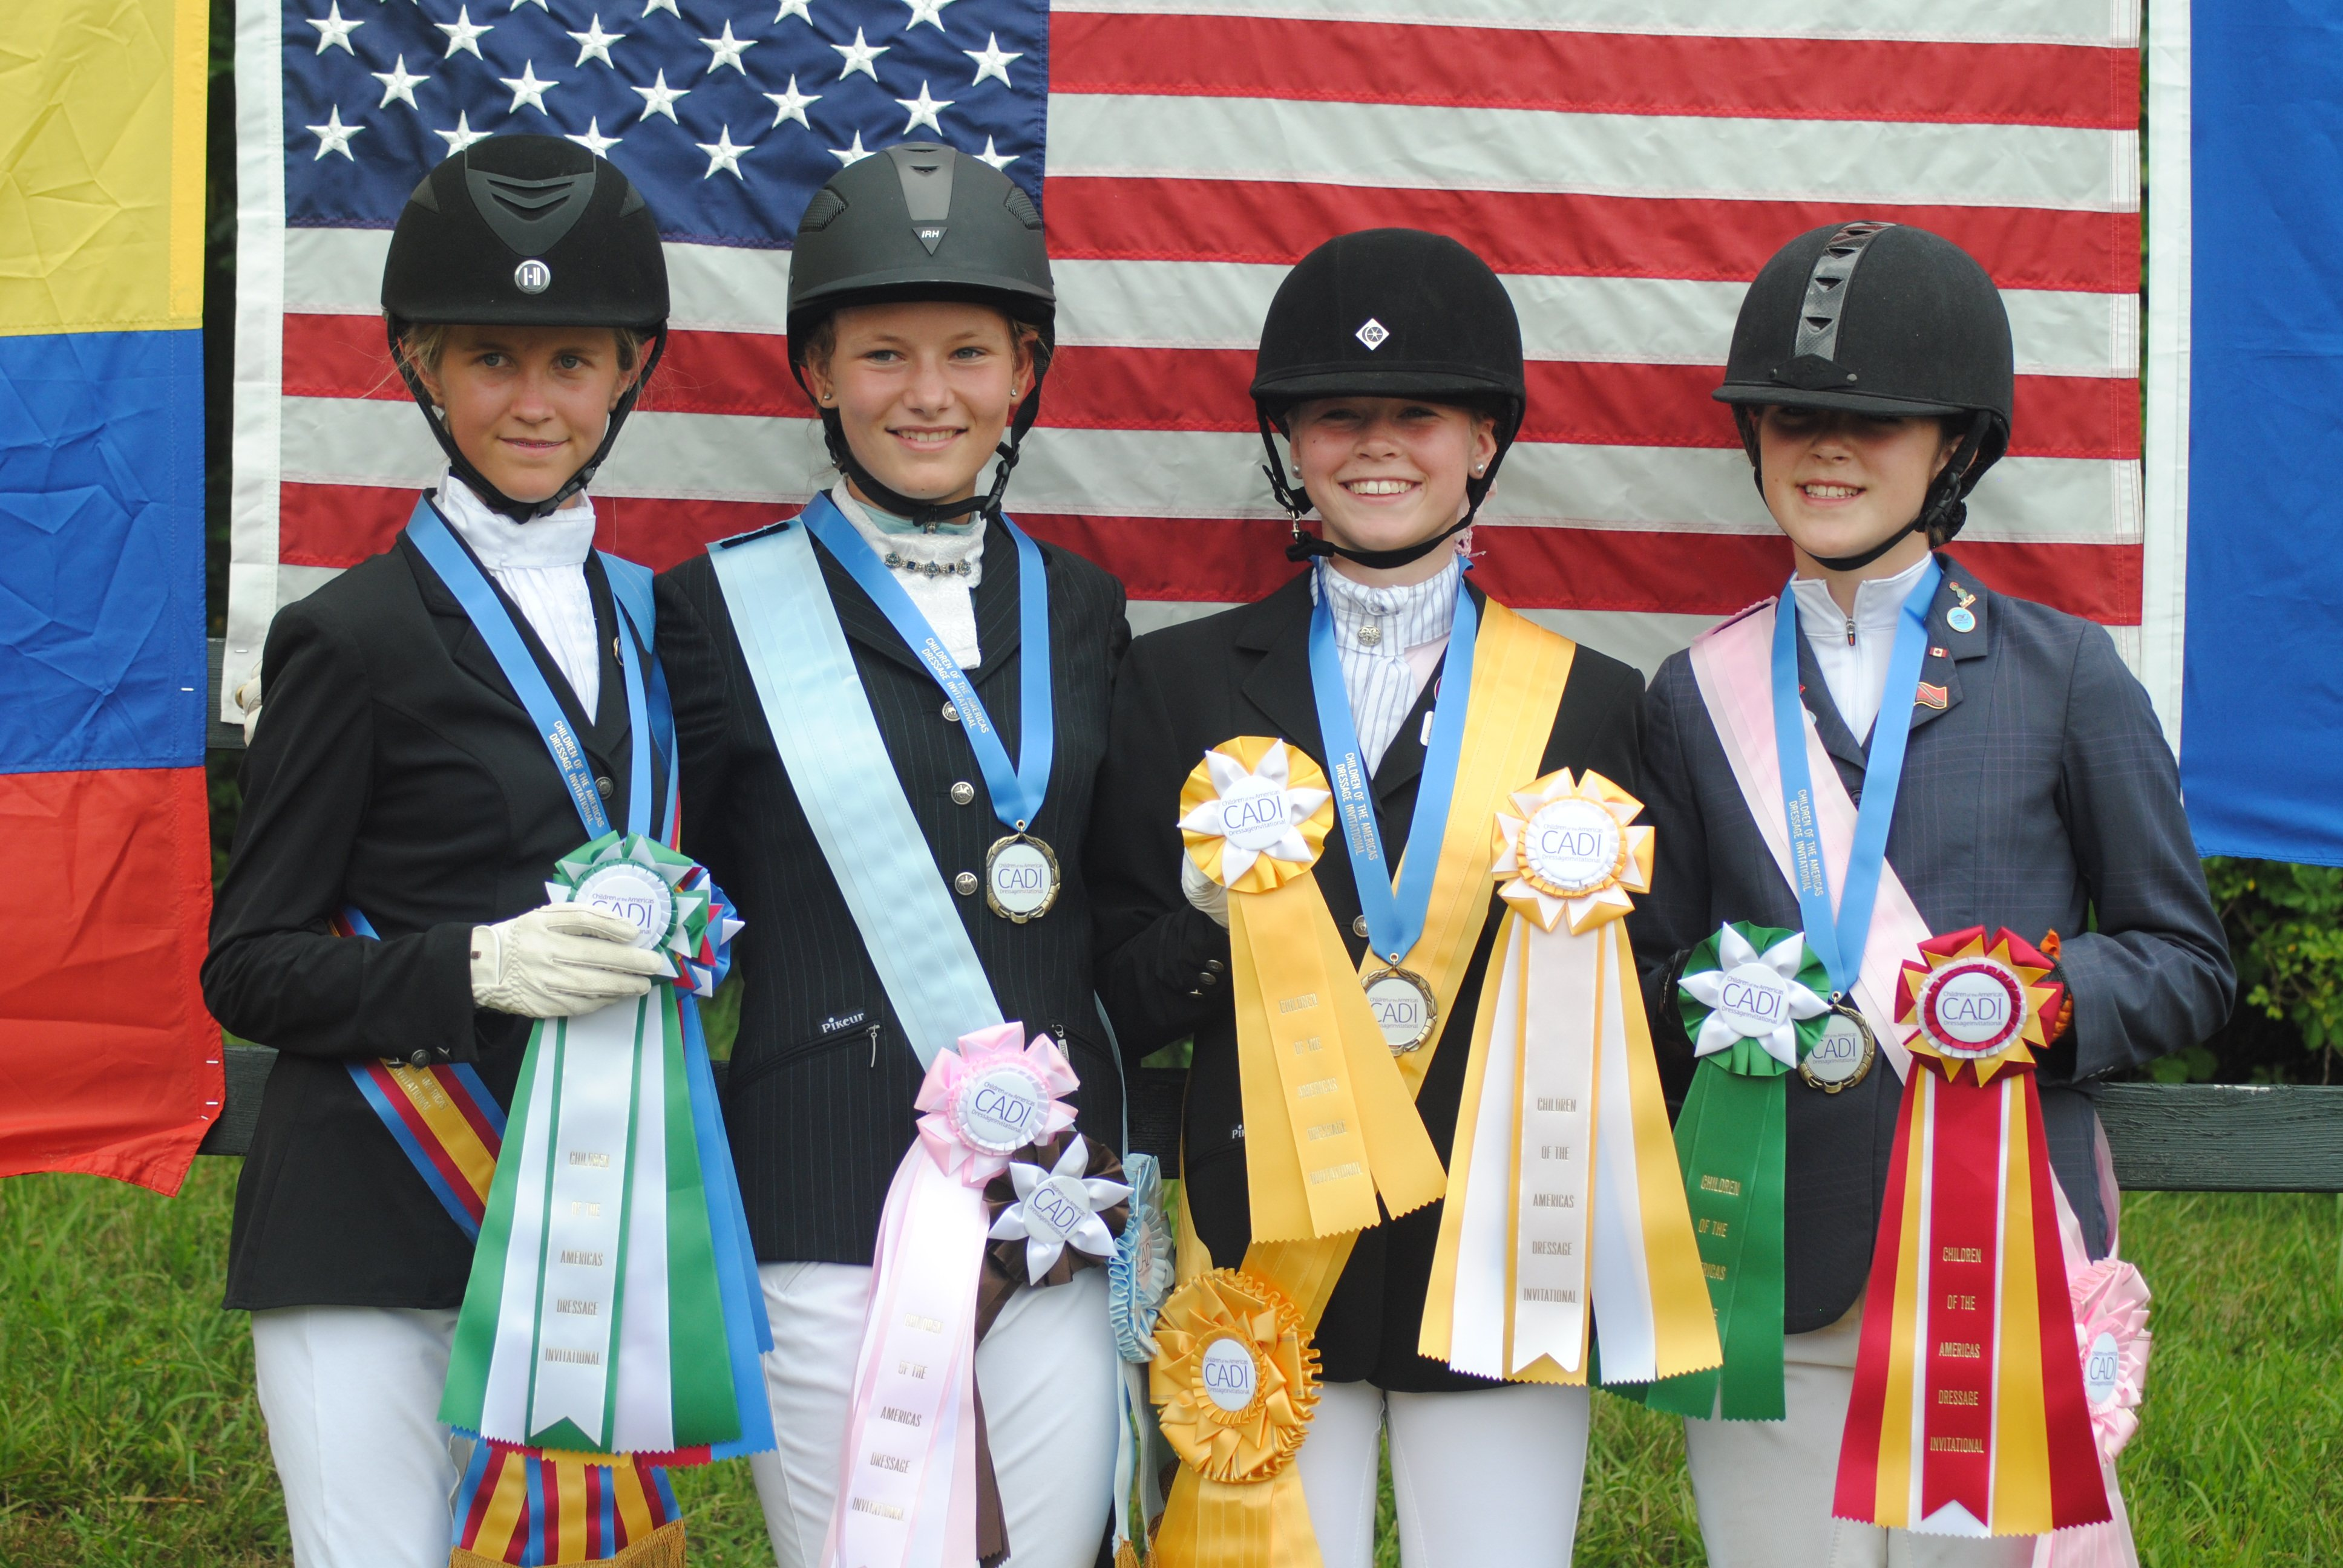 The riders who qualified for CADI to represent Dressage4Kids (D4K) stand together after the final awards ceremony. D4K's Youth Dressage Festival is a special qualifier for CADI, sponsoring a group of riders each year.